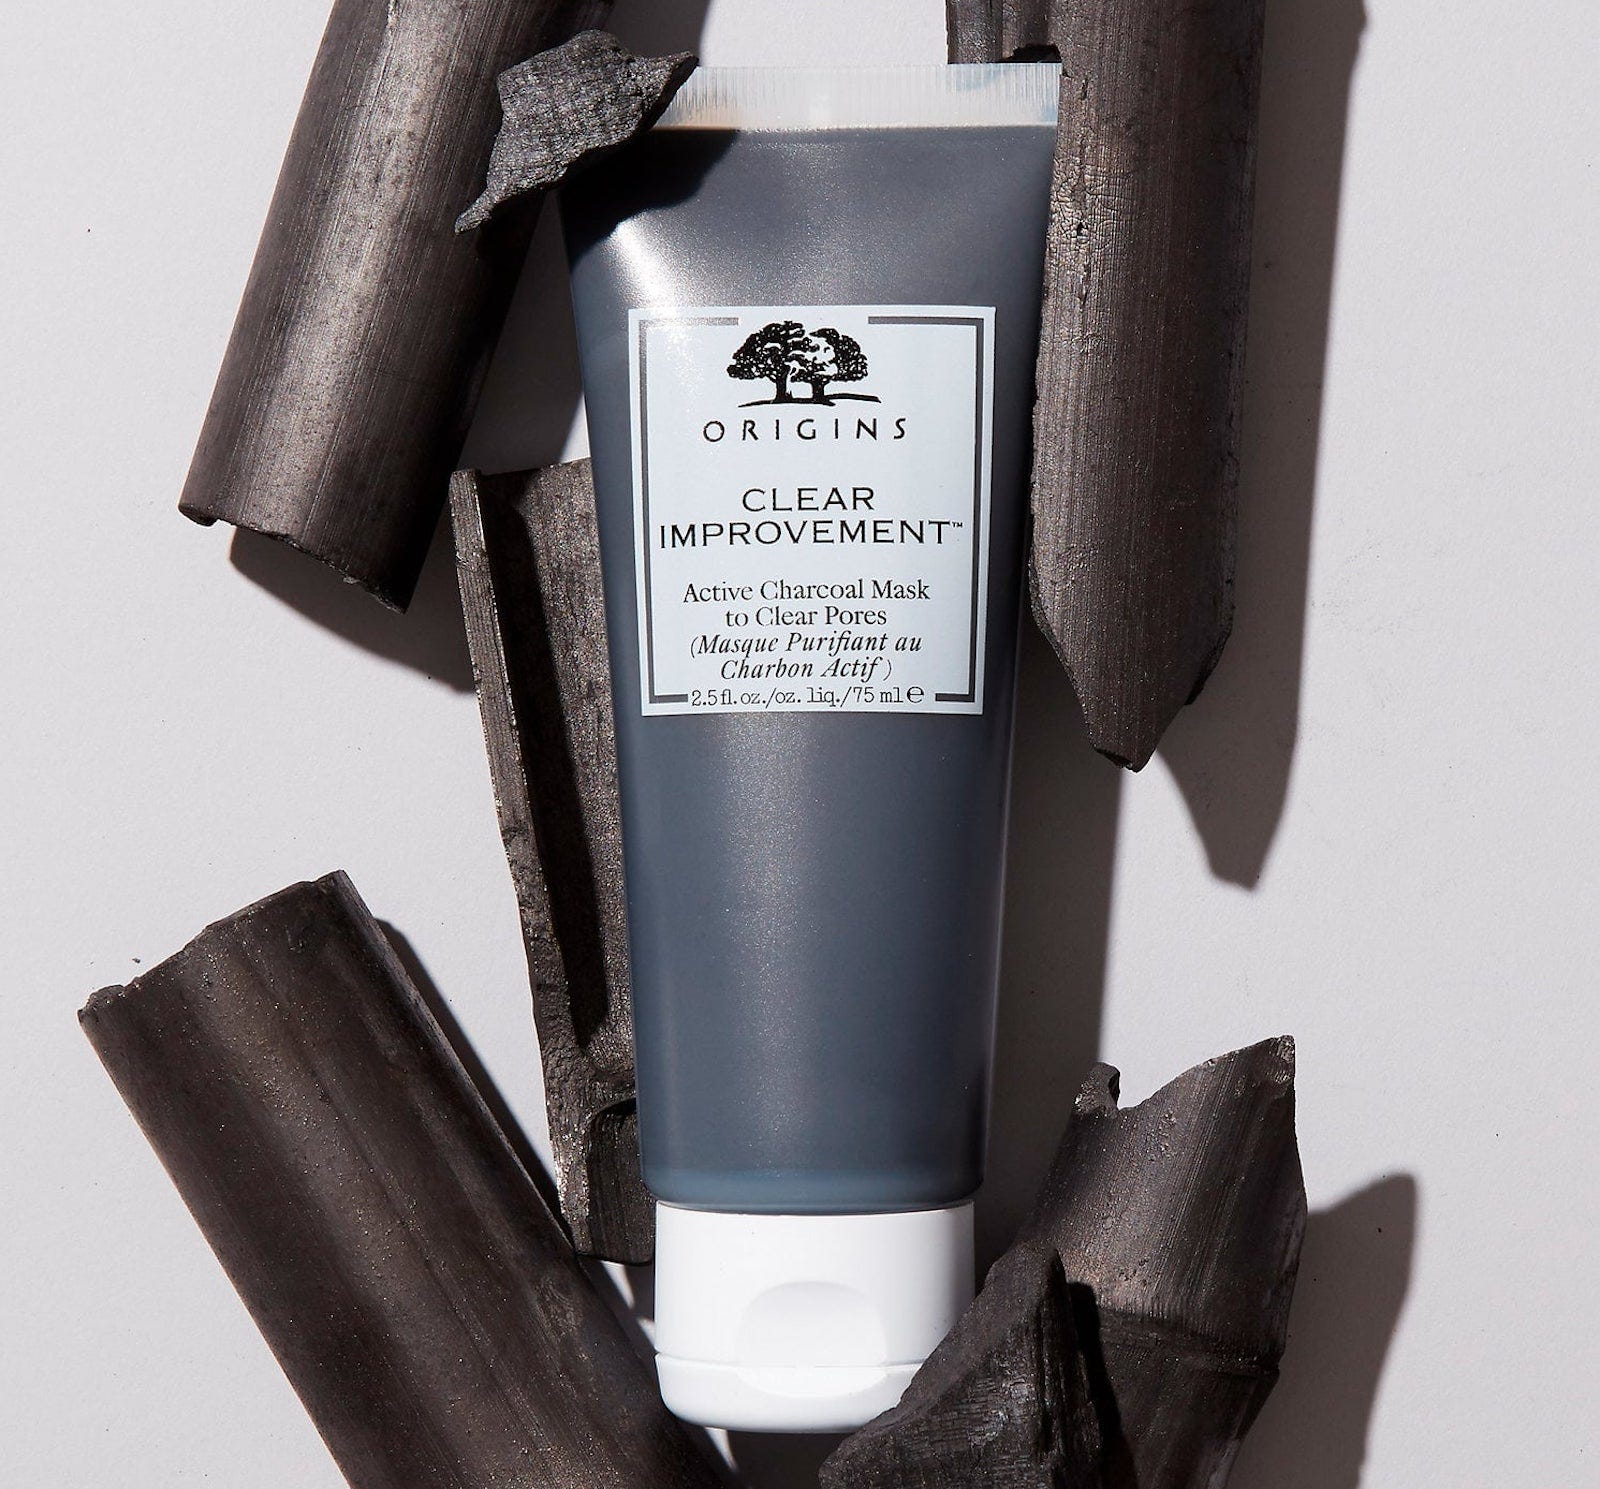 A tube of black charcoal paste surrounded by tubular pieces of charcoal